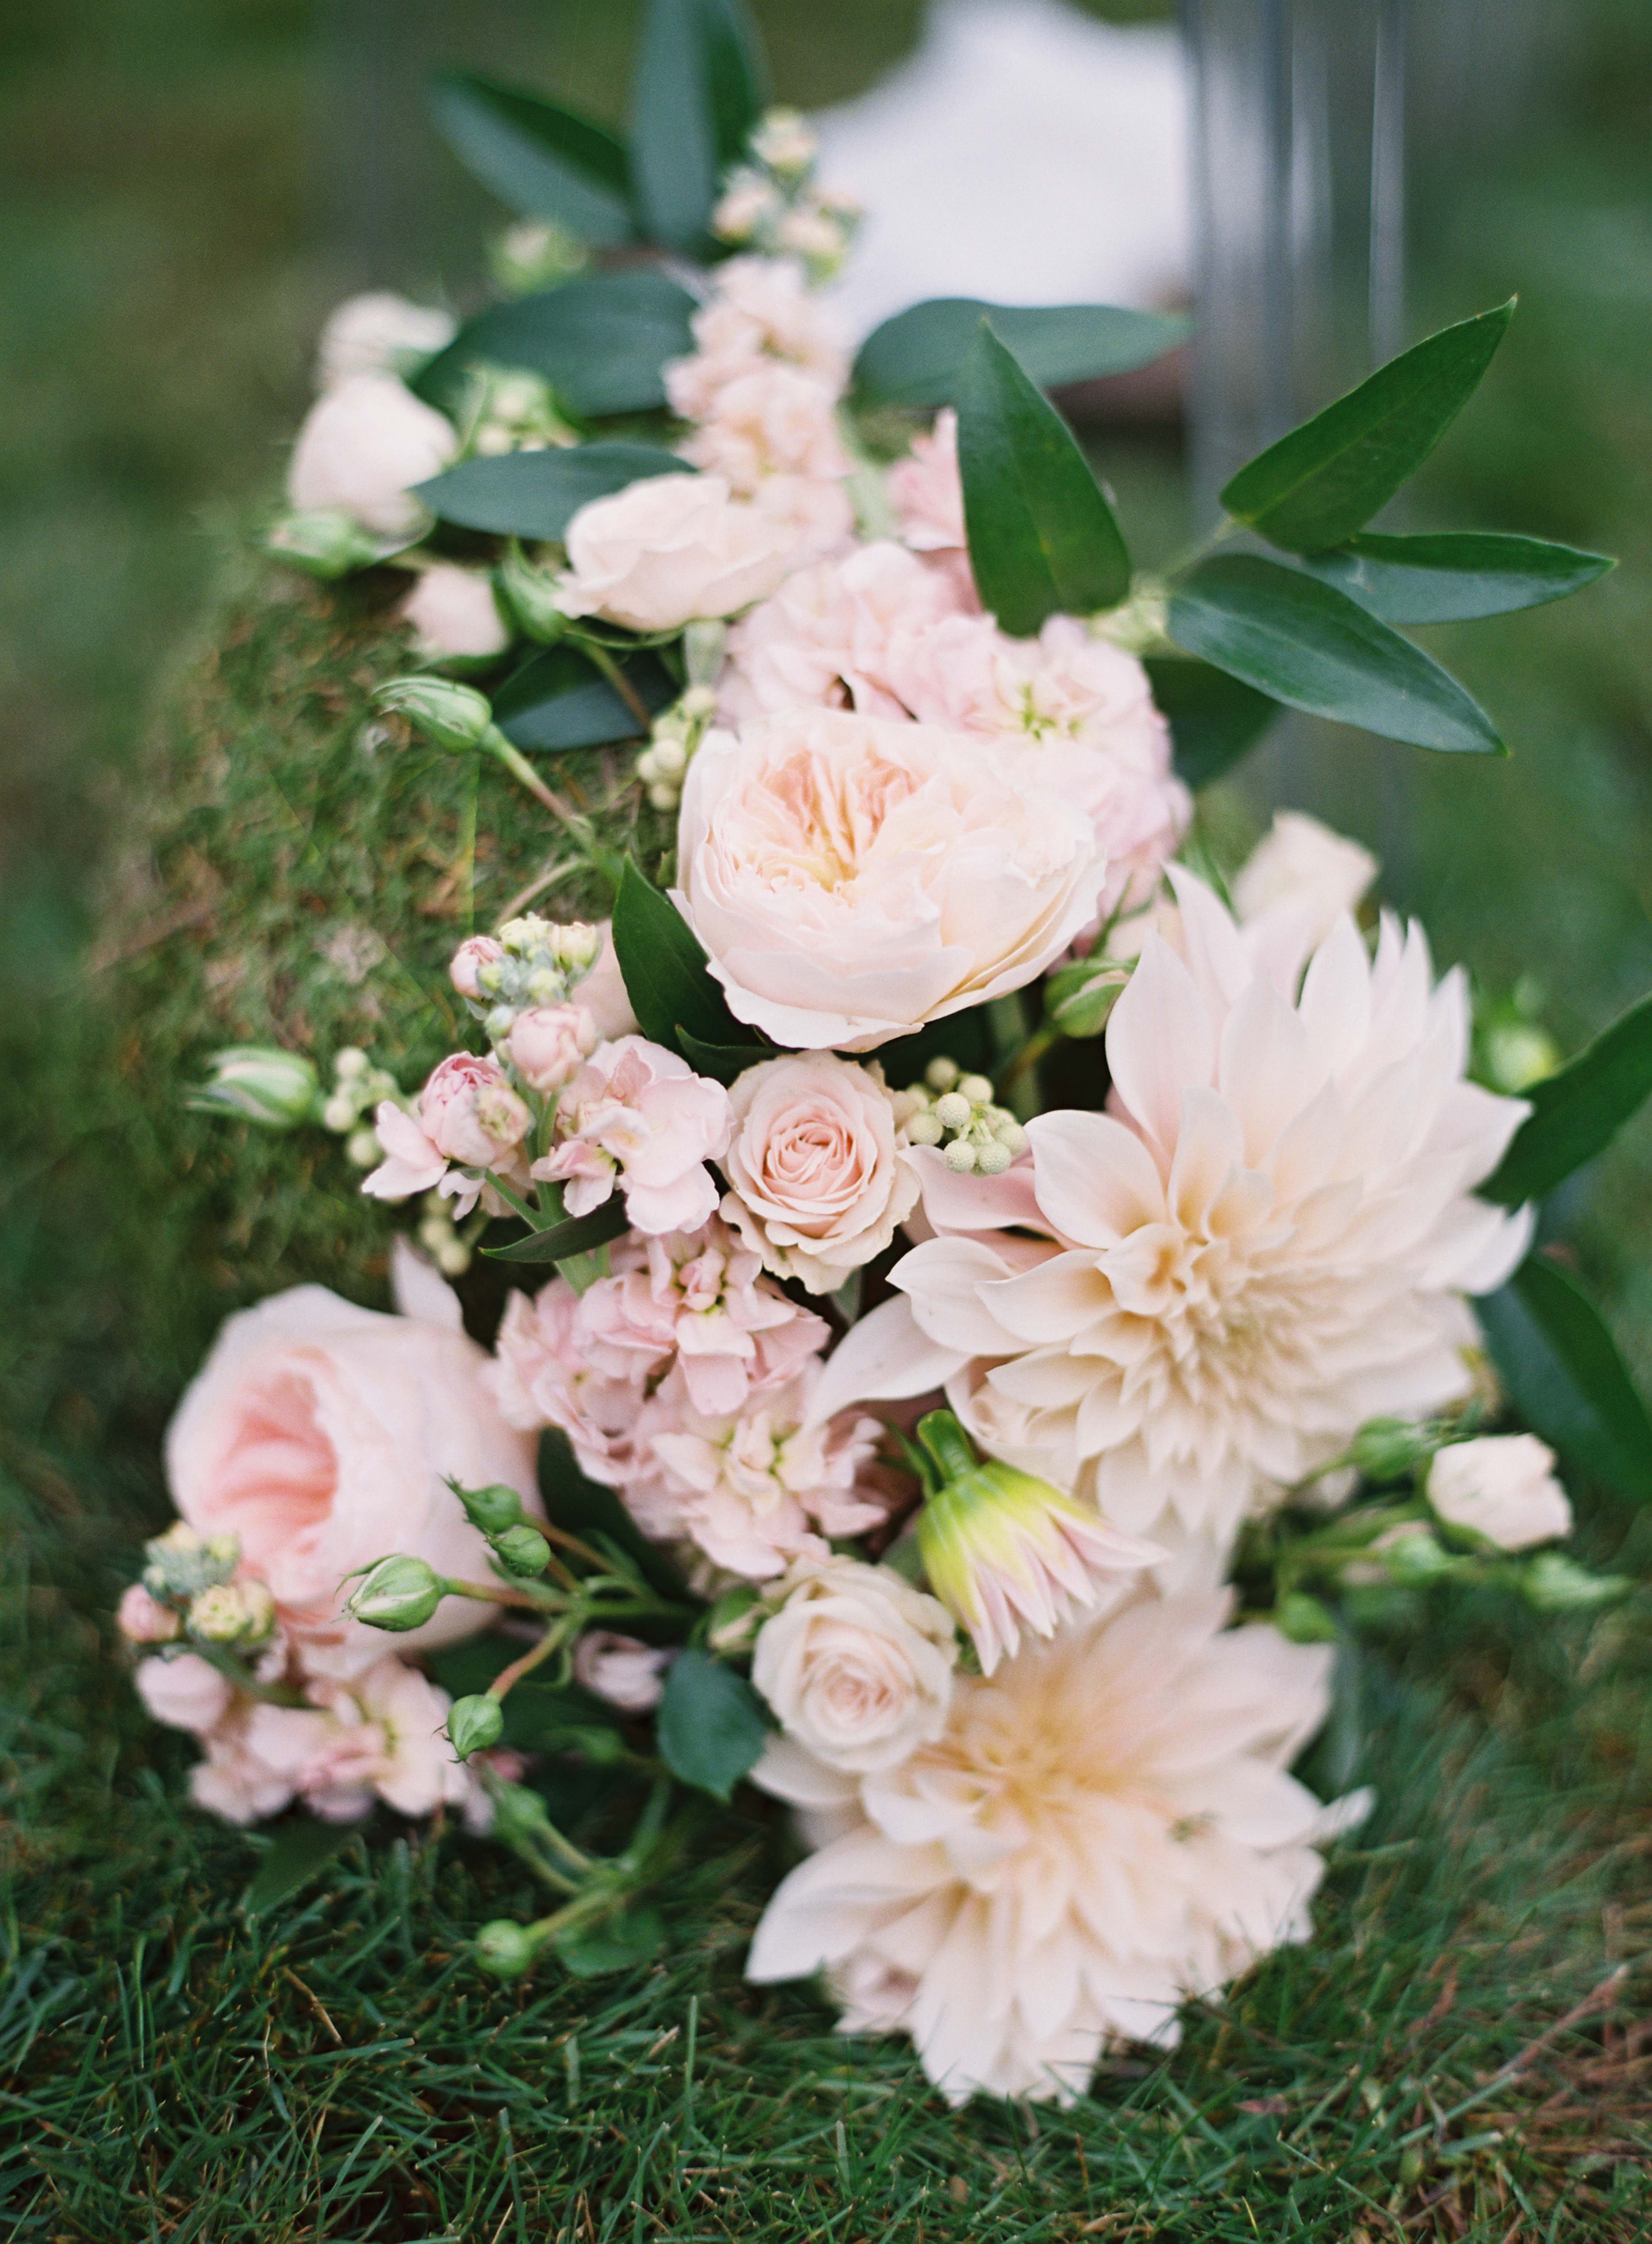 Peach flowers, cafe au lait dahlias, Juliet garden roses, peach stock on moss ball as ceremony aisle decor